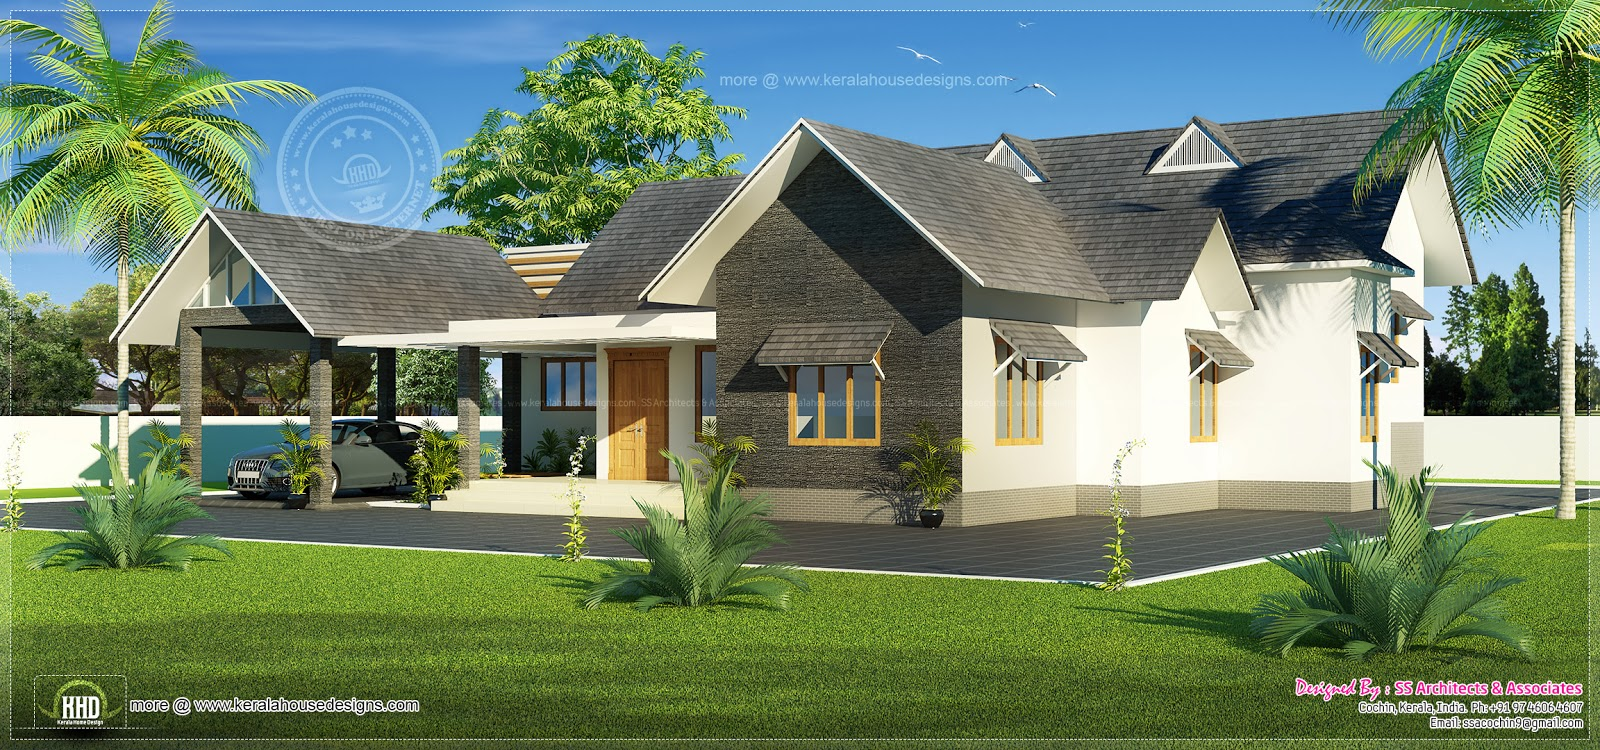 House Plans And Design Architectural Designs Bungalow Houses